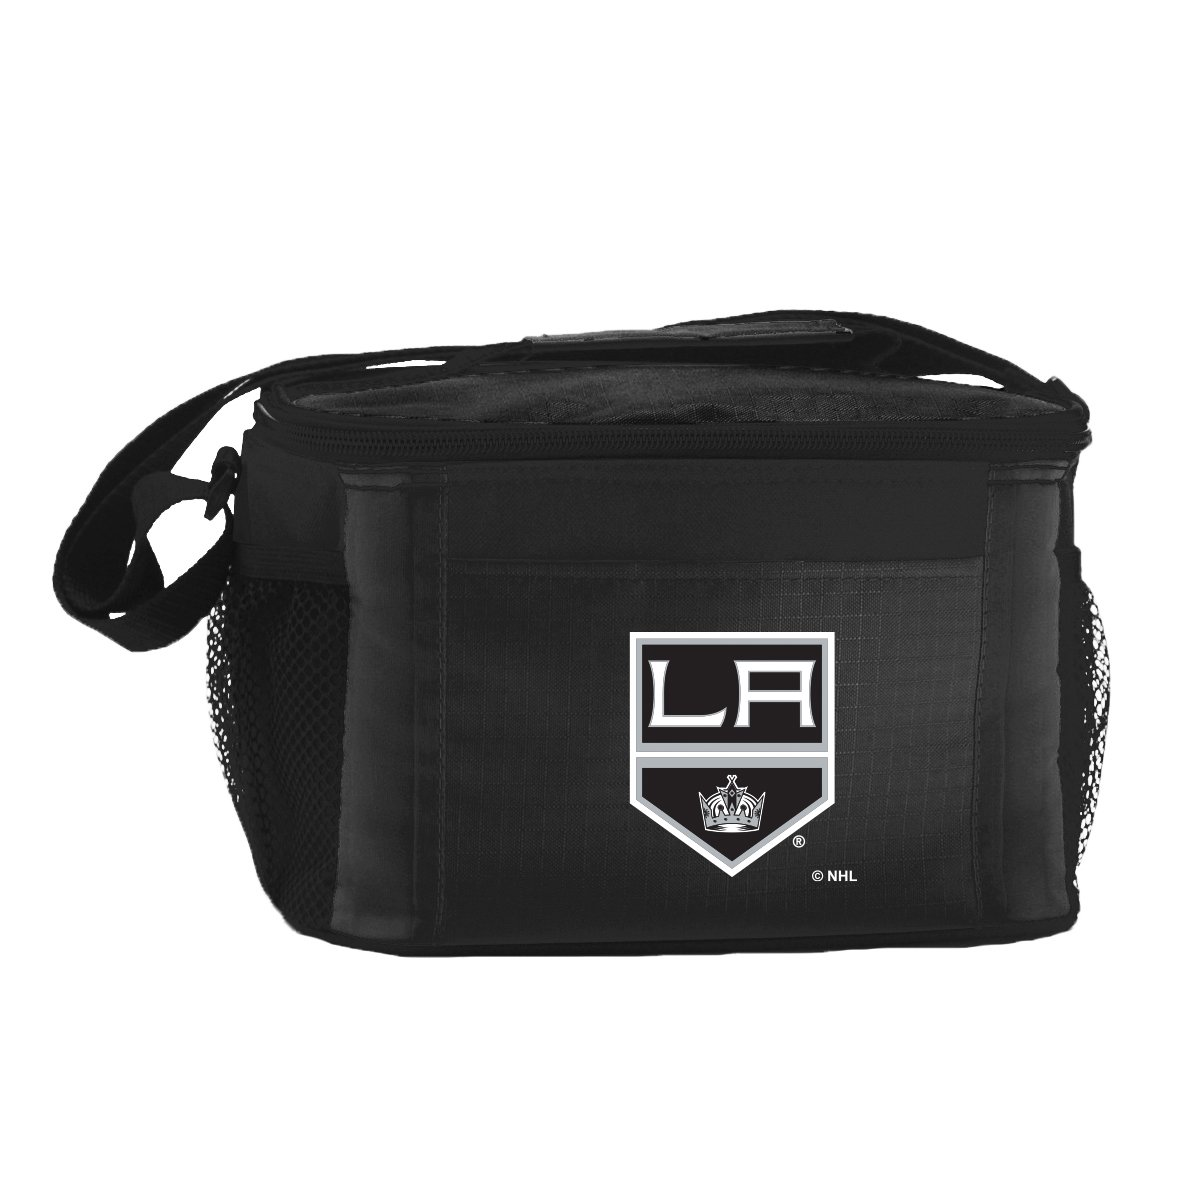 NHL Los Angeles Kings Insulated Lunch Cooler Bag with Zipper Closure, Black